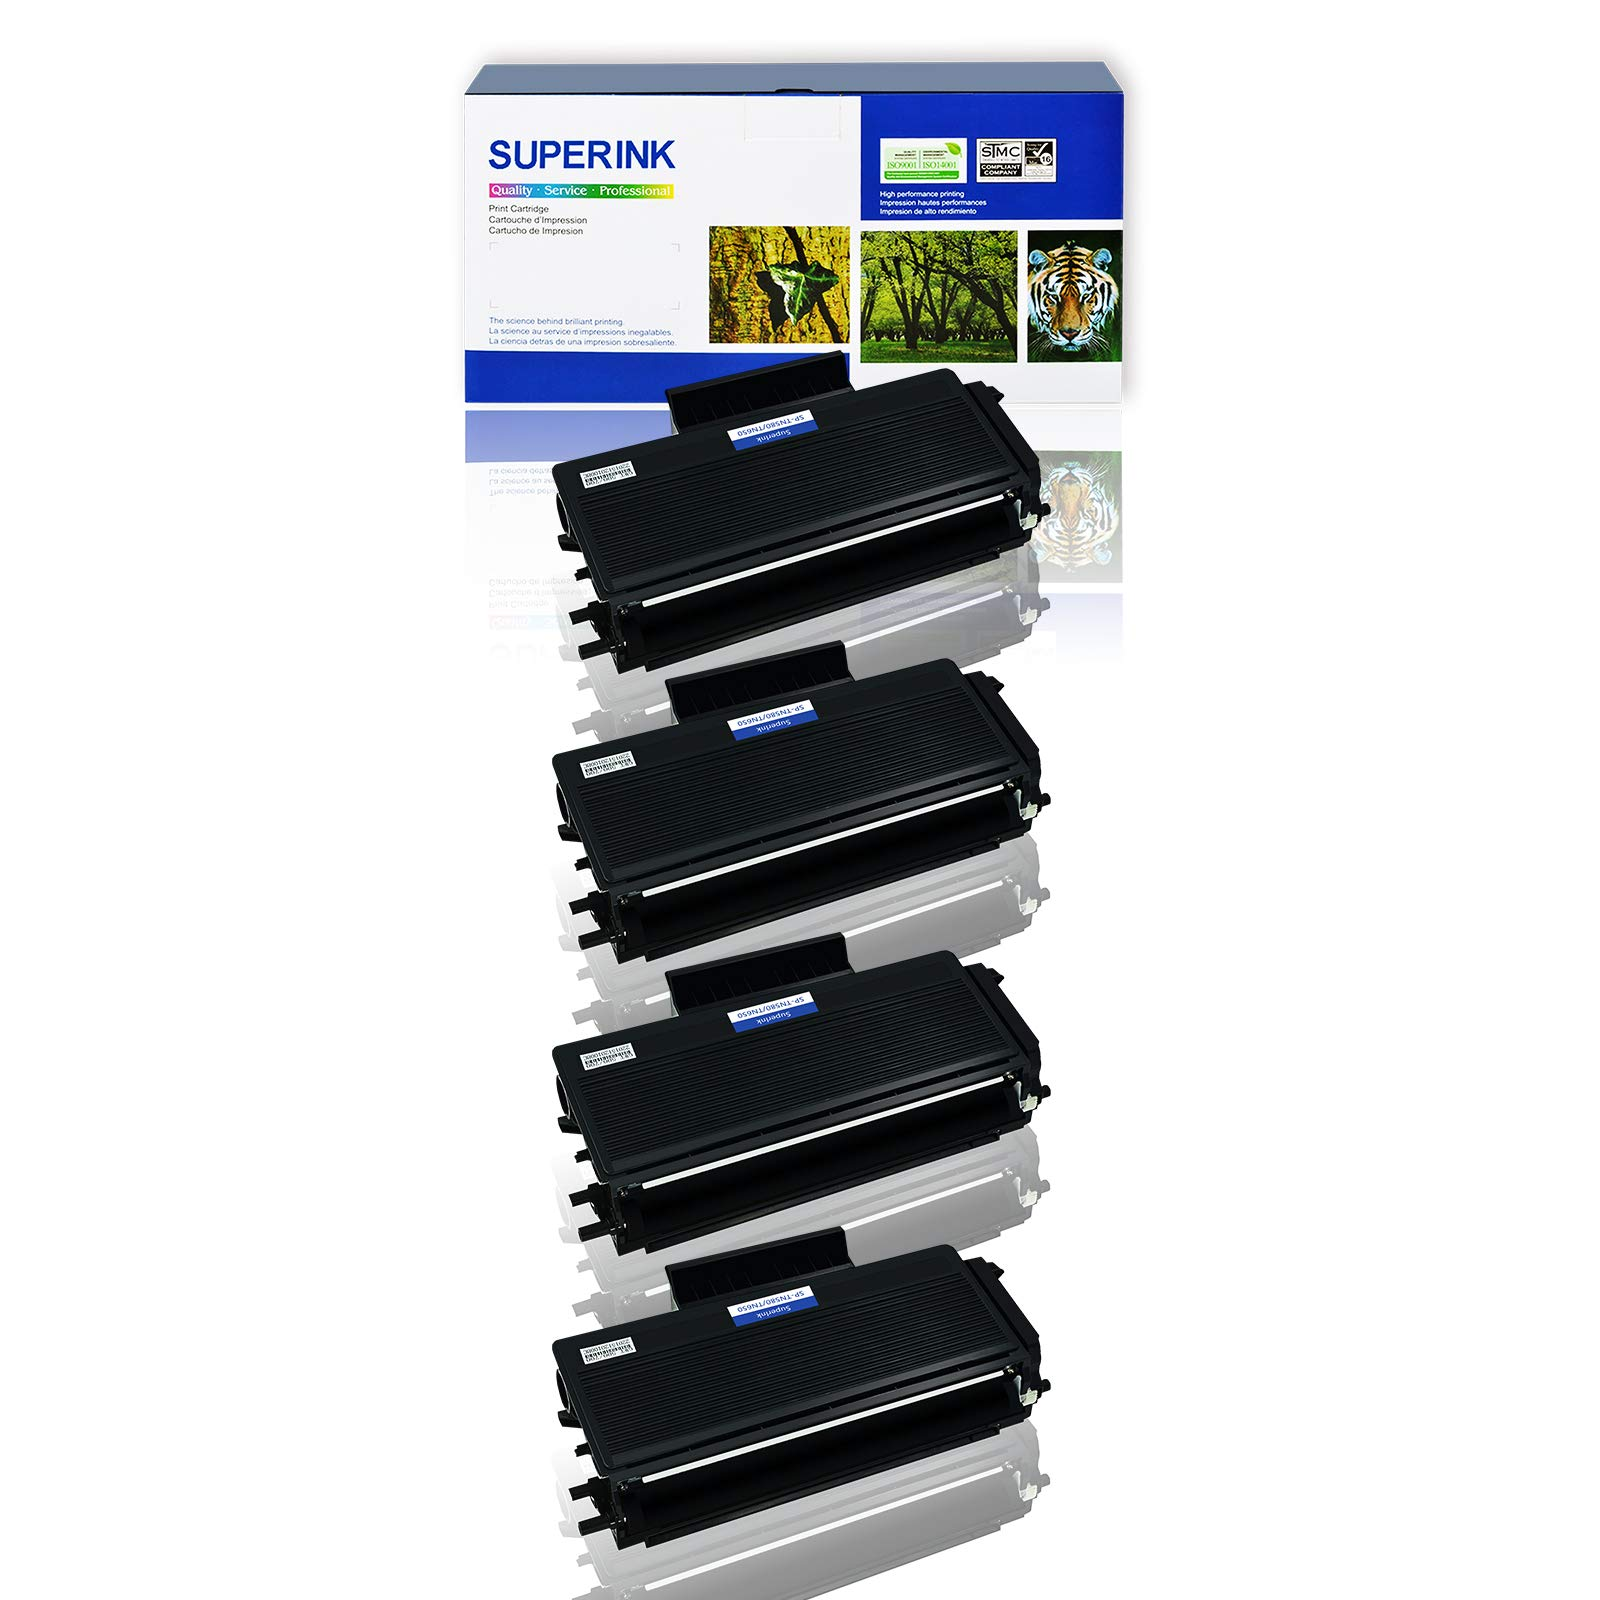 SuperInk 4 Pack Compatible Toner Cartridge Replacement for Brother TN650 TN-650 TN620 High Yield use with DCP-8050DN 8080DN 8085DN HL-5340D 5350DN MFC-8370 8480DN 8680DN 8690DW 8880DN 8890DW Printer